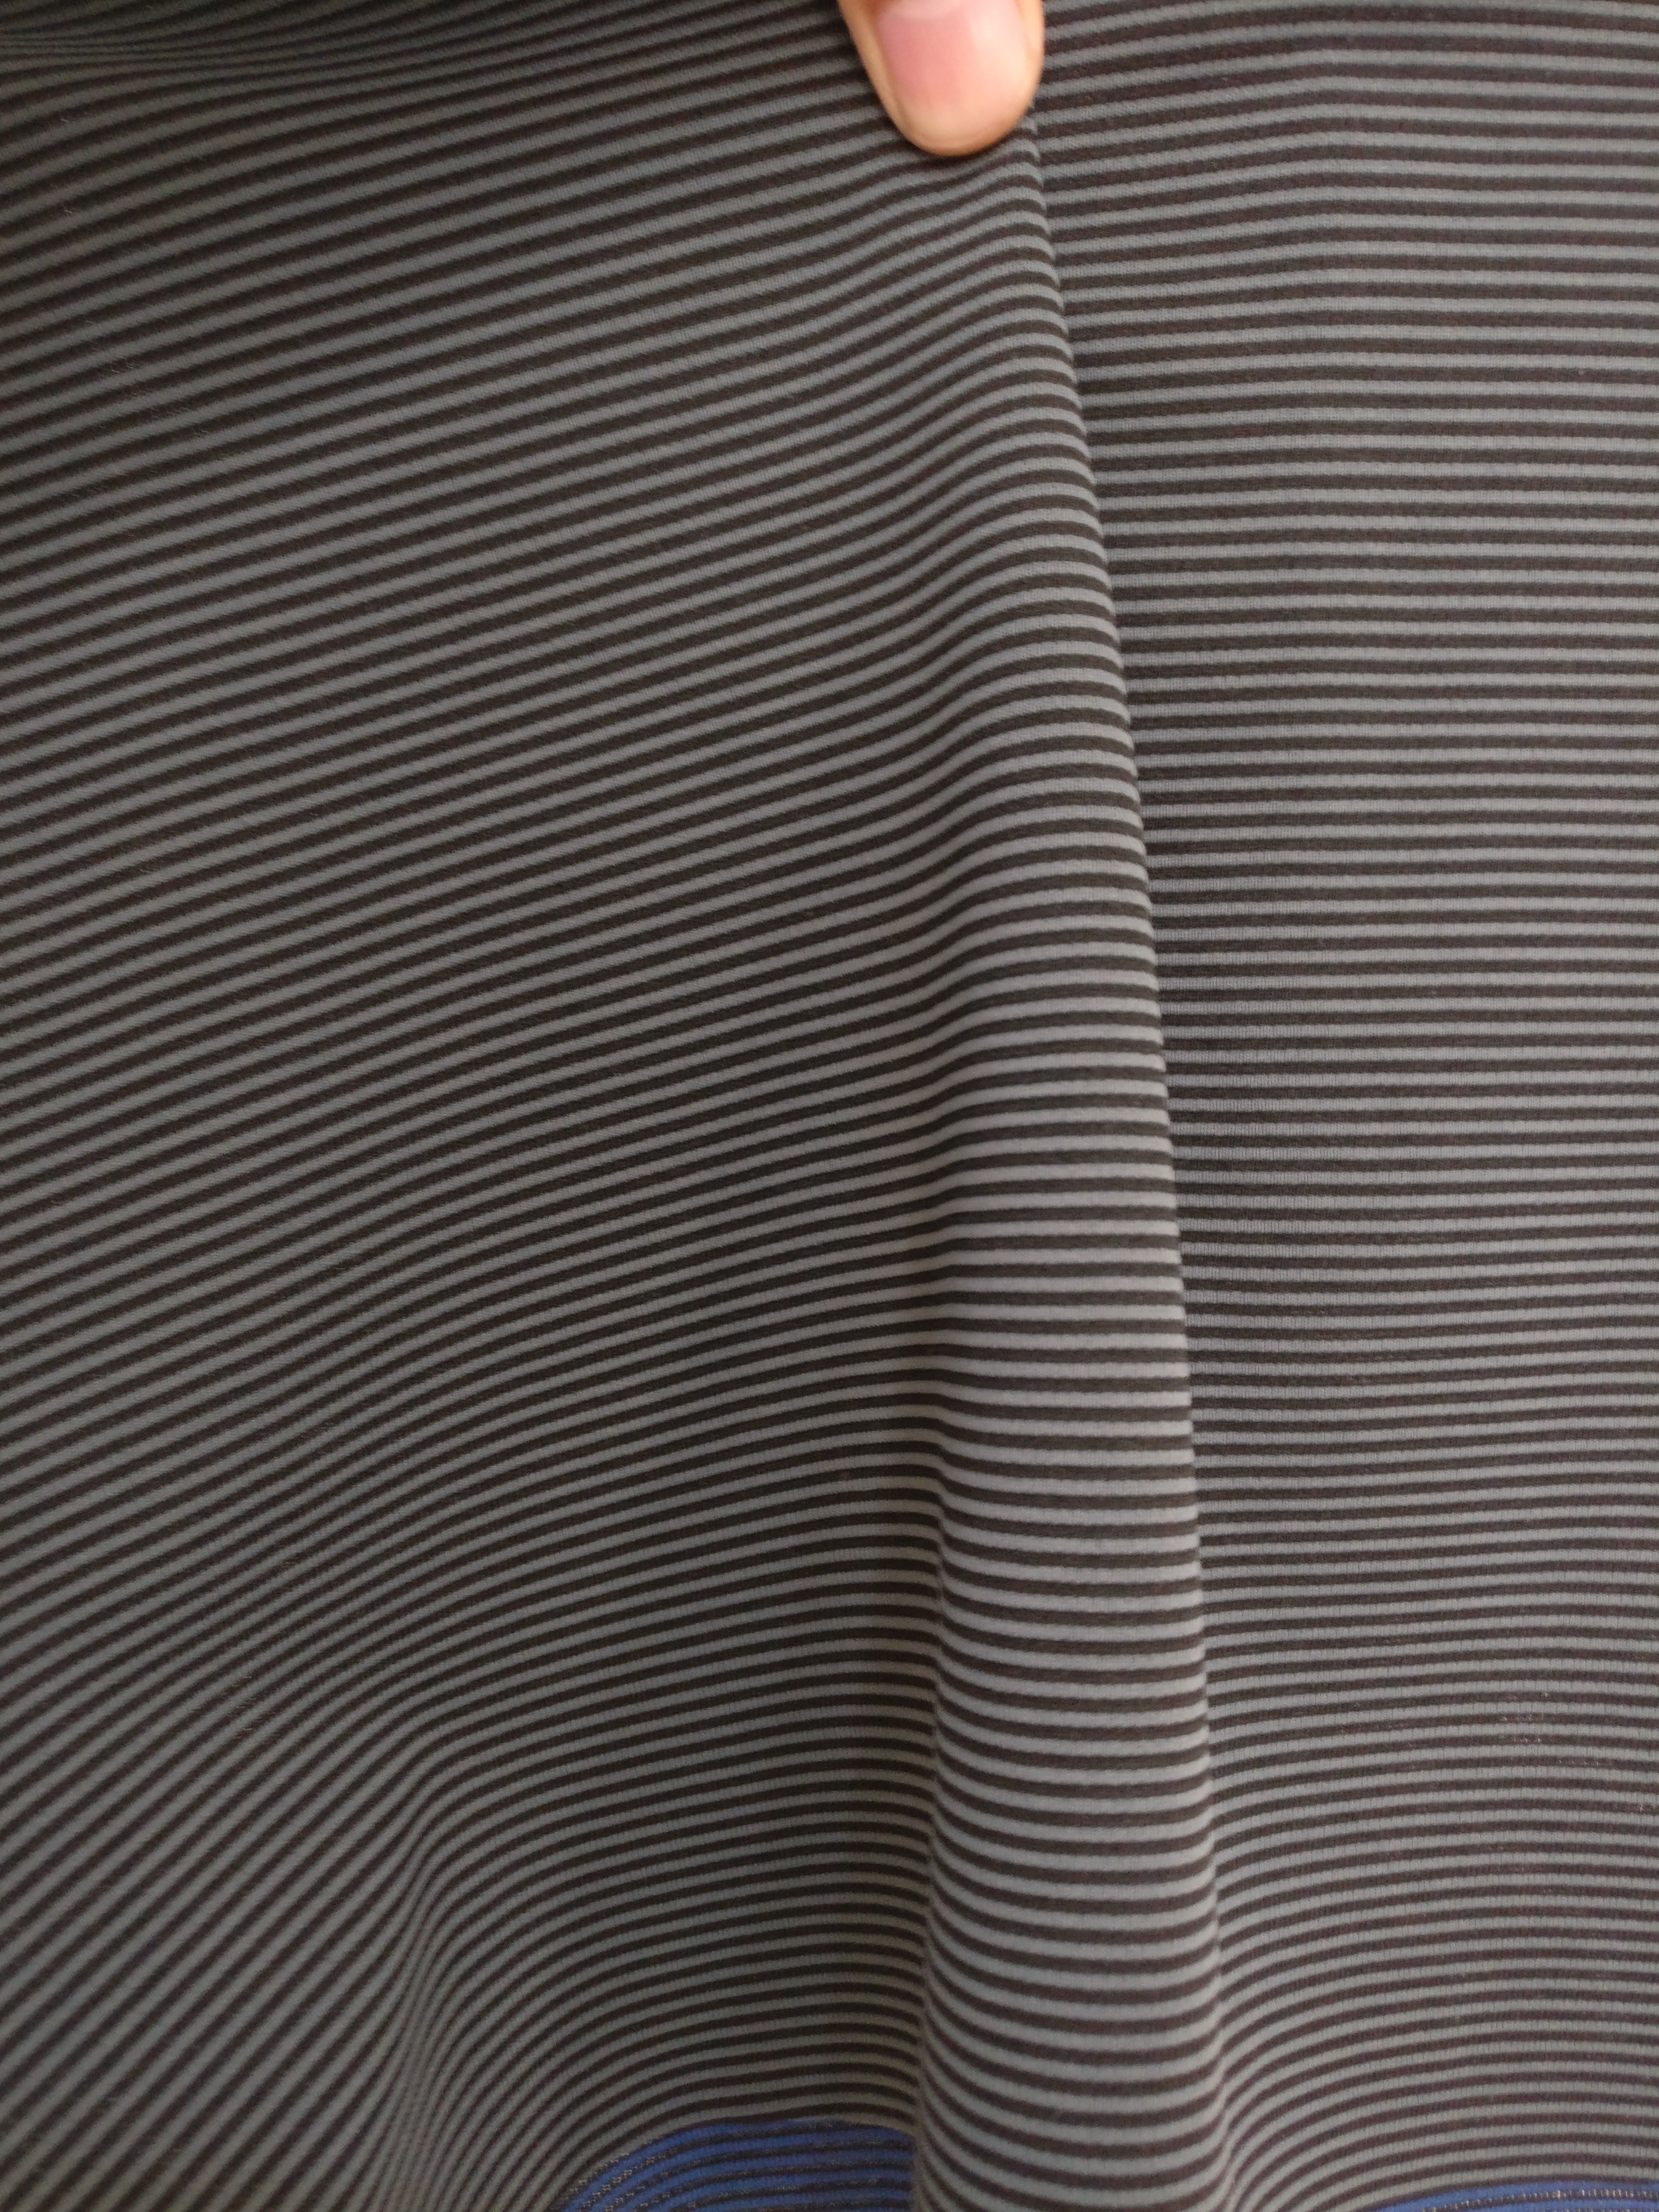 Cotrai Fabric